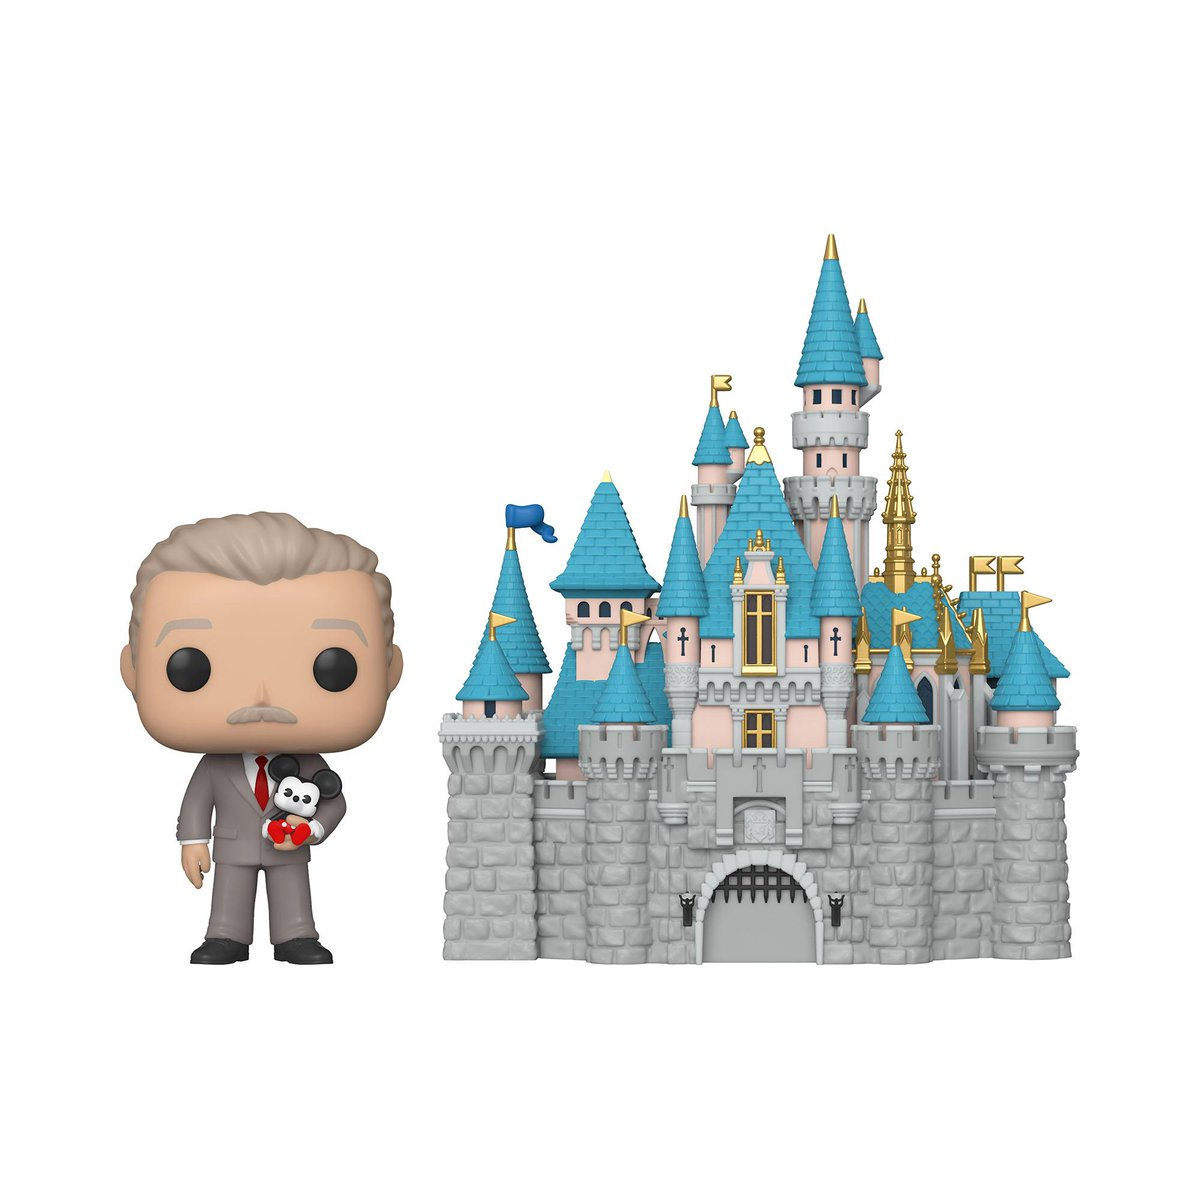 RT & follow @OriginalFunko for your chance to WIN this @shopDisney exclusive Sleeping Beauty Castle and Walt Disney Pop! Town! #FunkoGiveaway #Funko #Disney